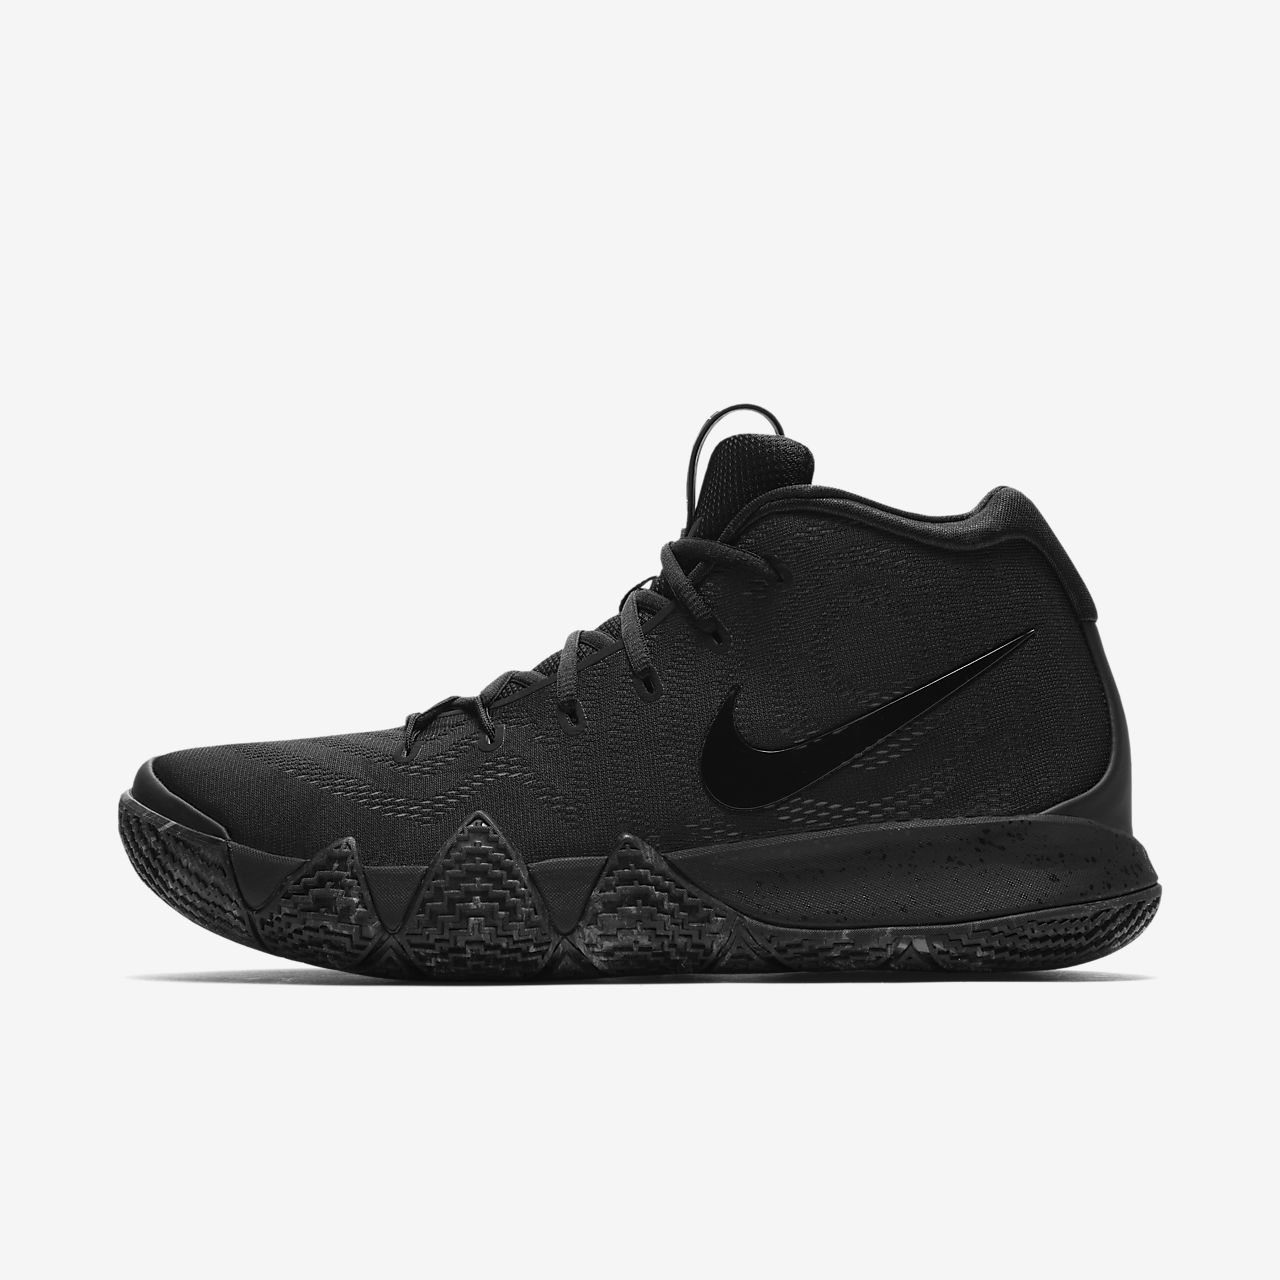 best cheap c21da 158e2 Low Resolution Kyrie 4 Basketball Shoe Kyrie 4 Basketball Shoe